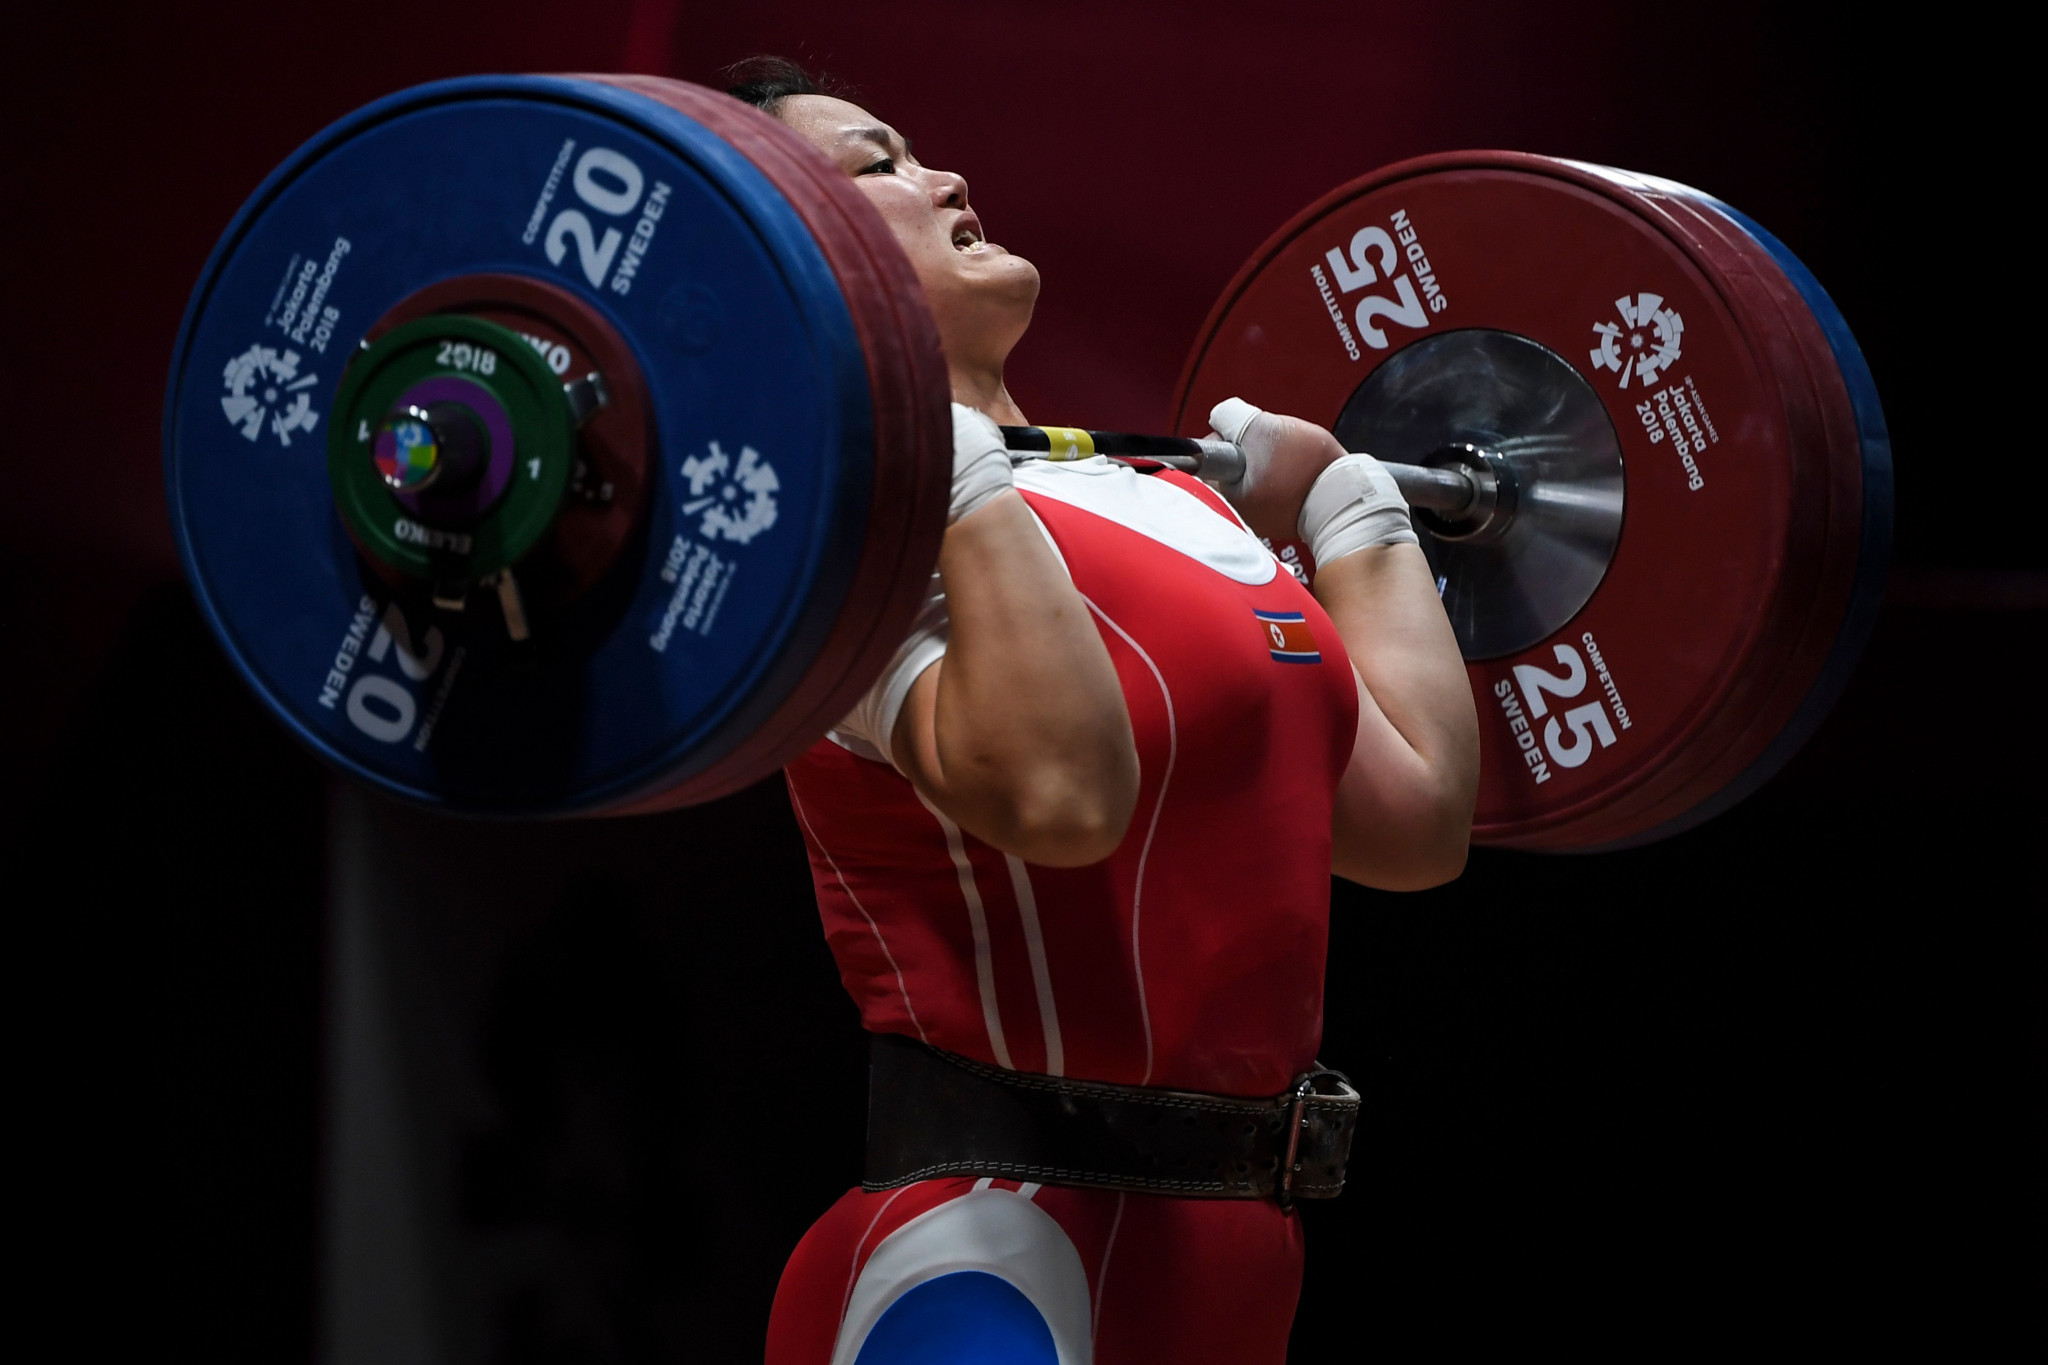 The overall standings are determined upon completion of the clean and jerk ©Getty Images